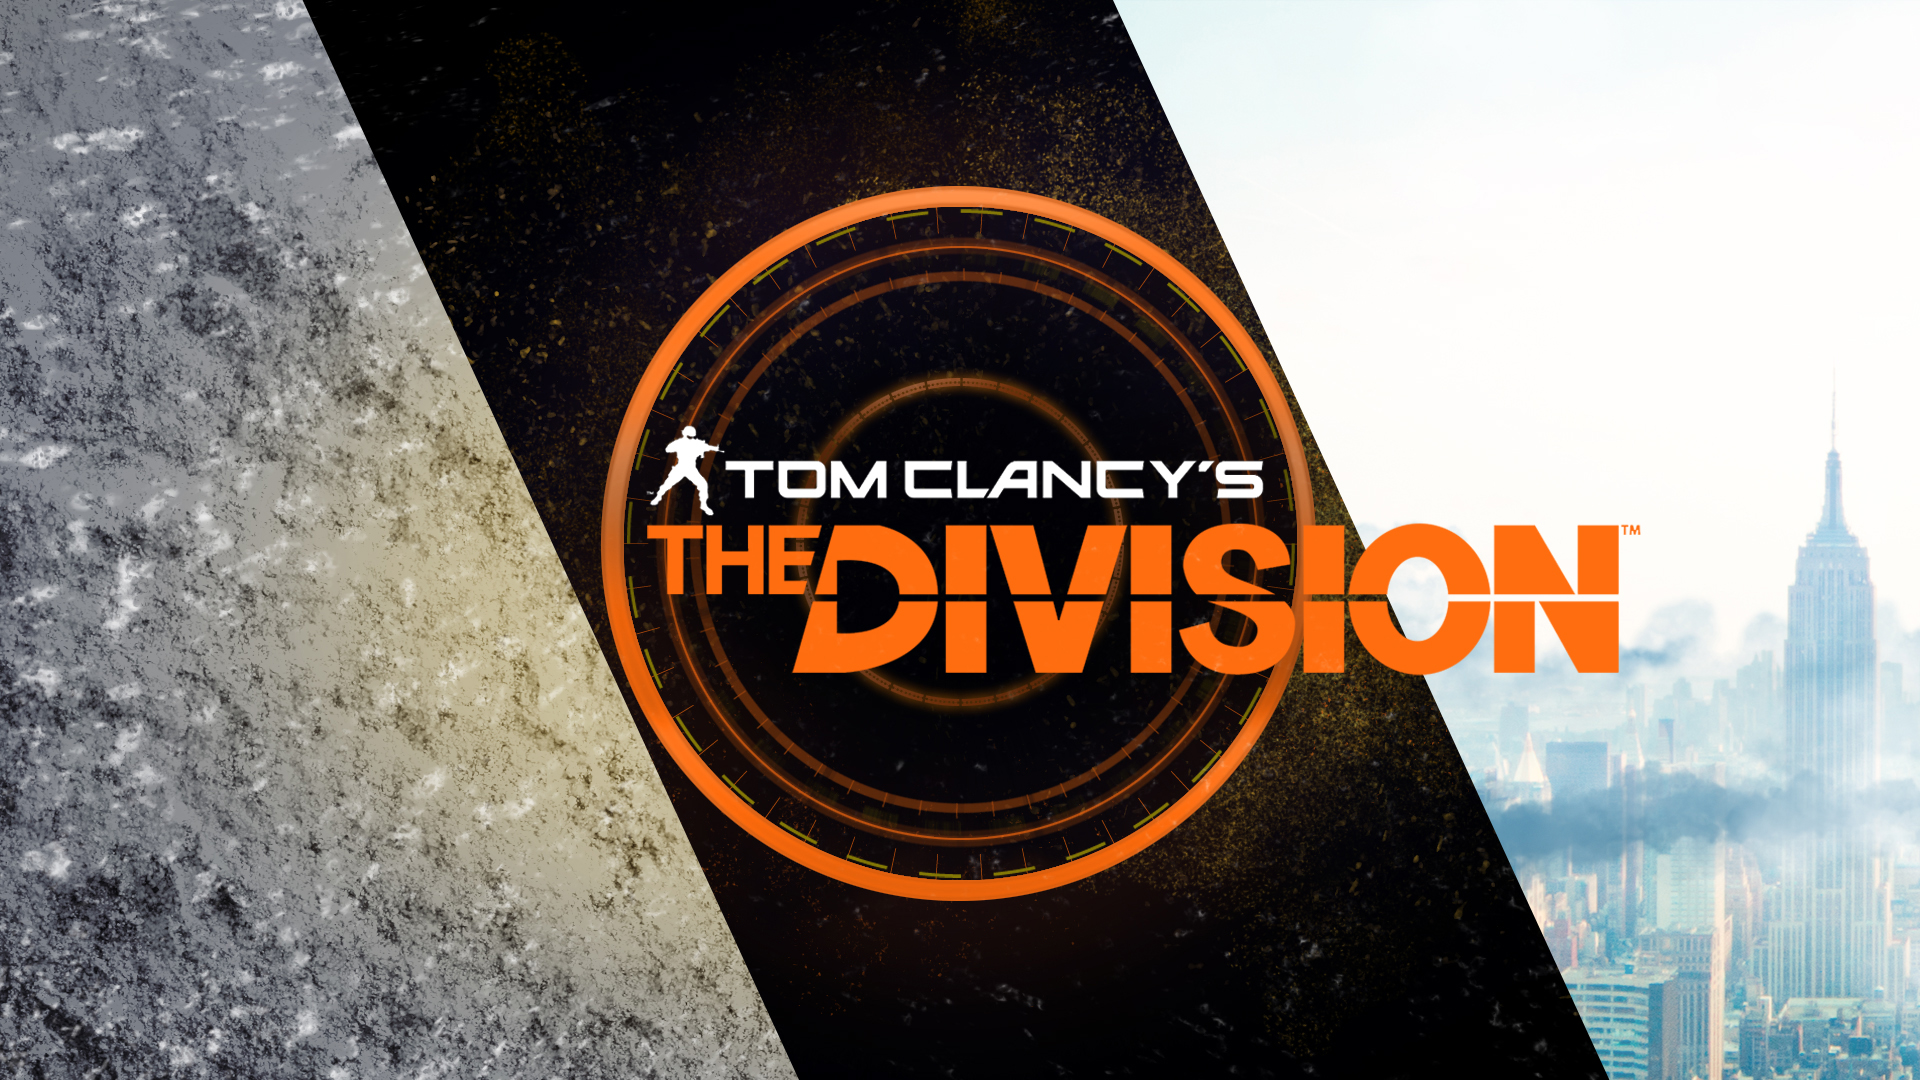 Tom Clancy's The Division Wallpaper Pack By